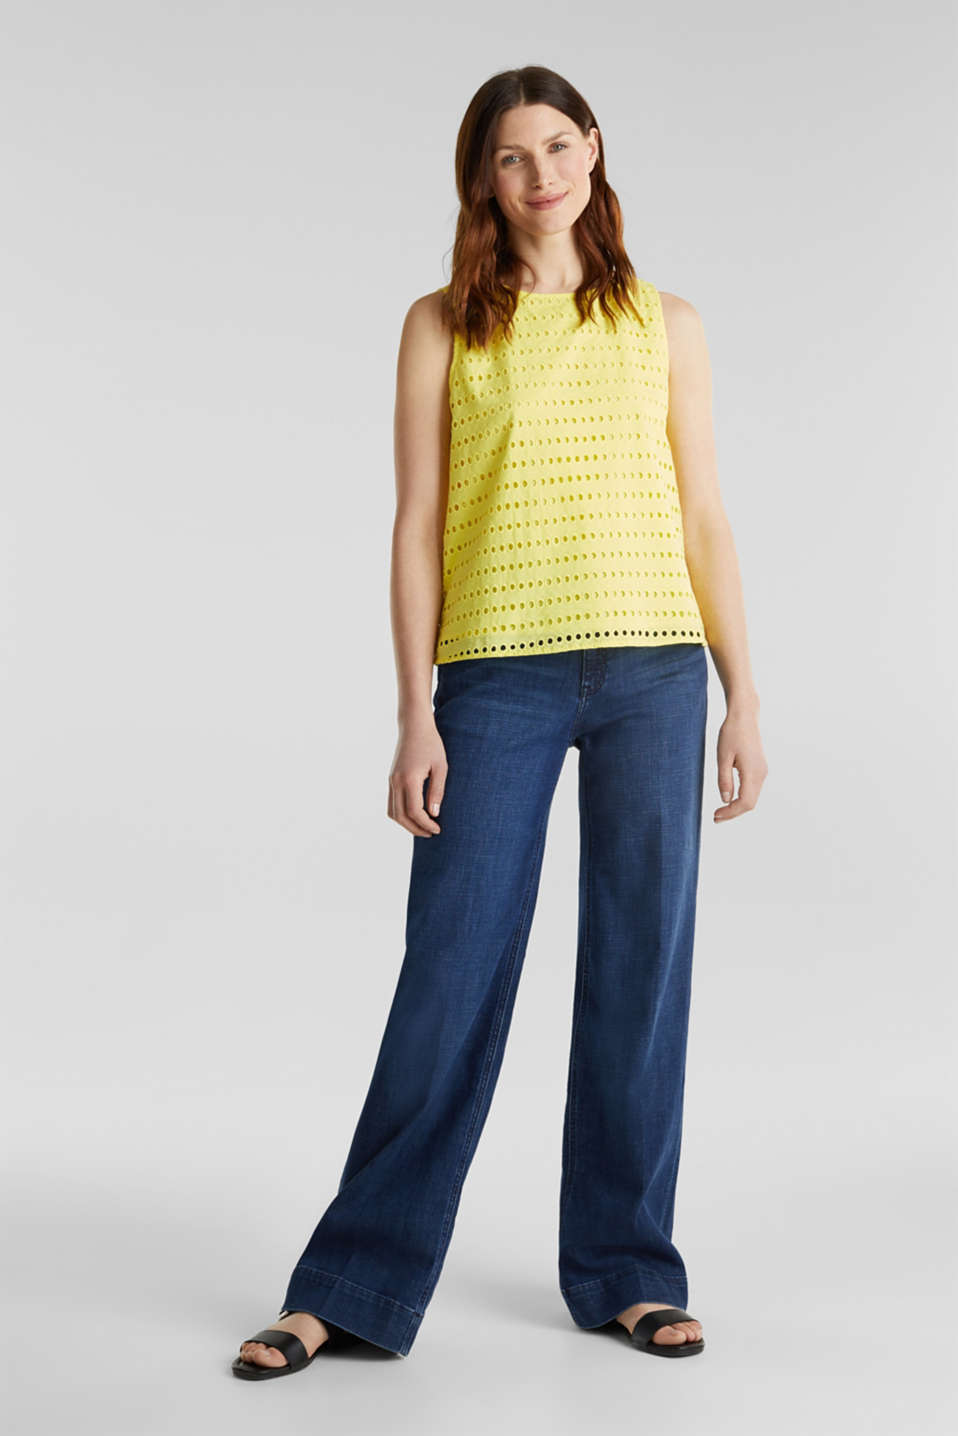 Blouse top, 100% cotton, BRIGHT YELLOW, detail image number 1